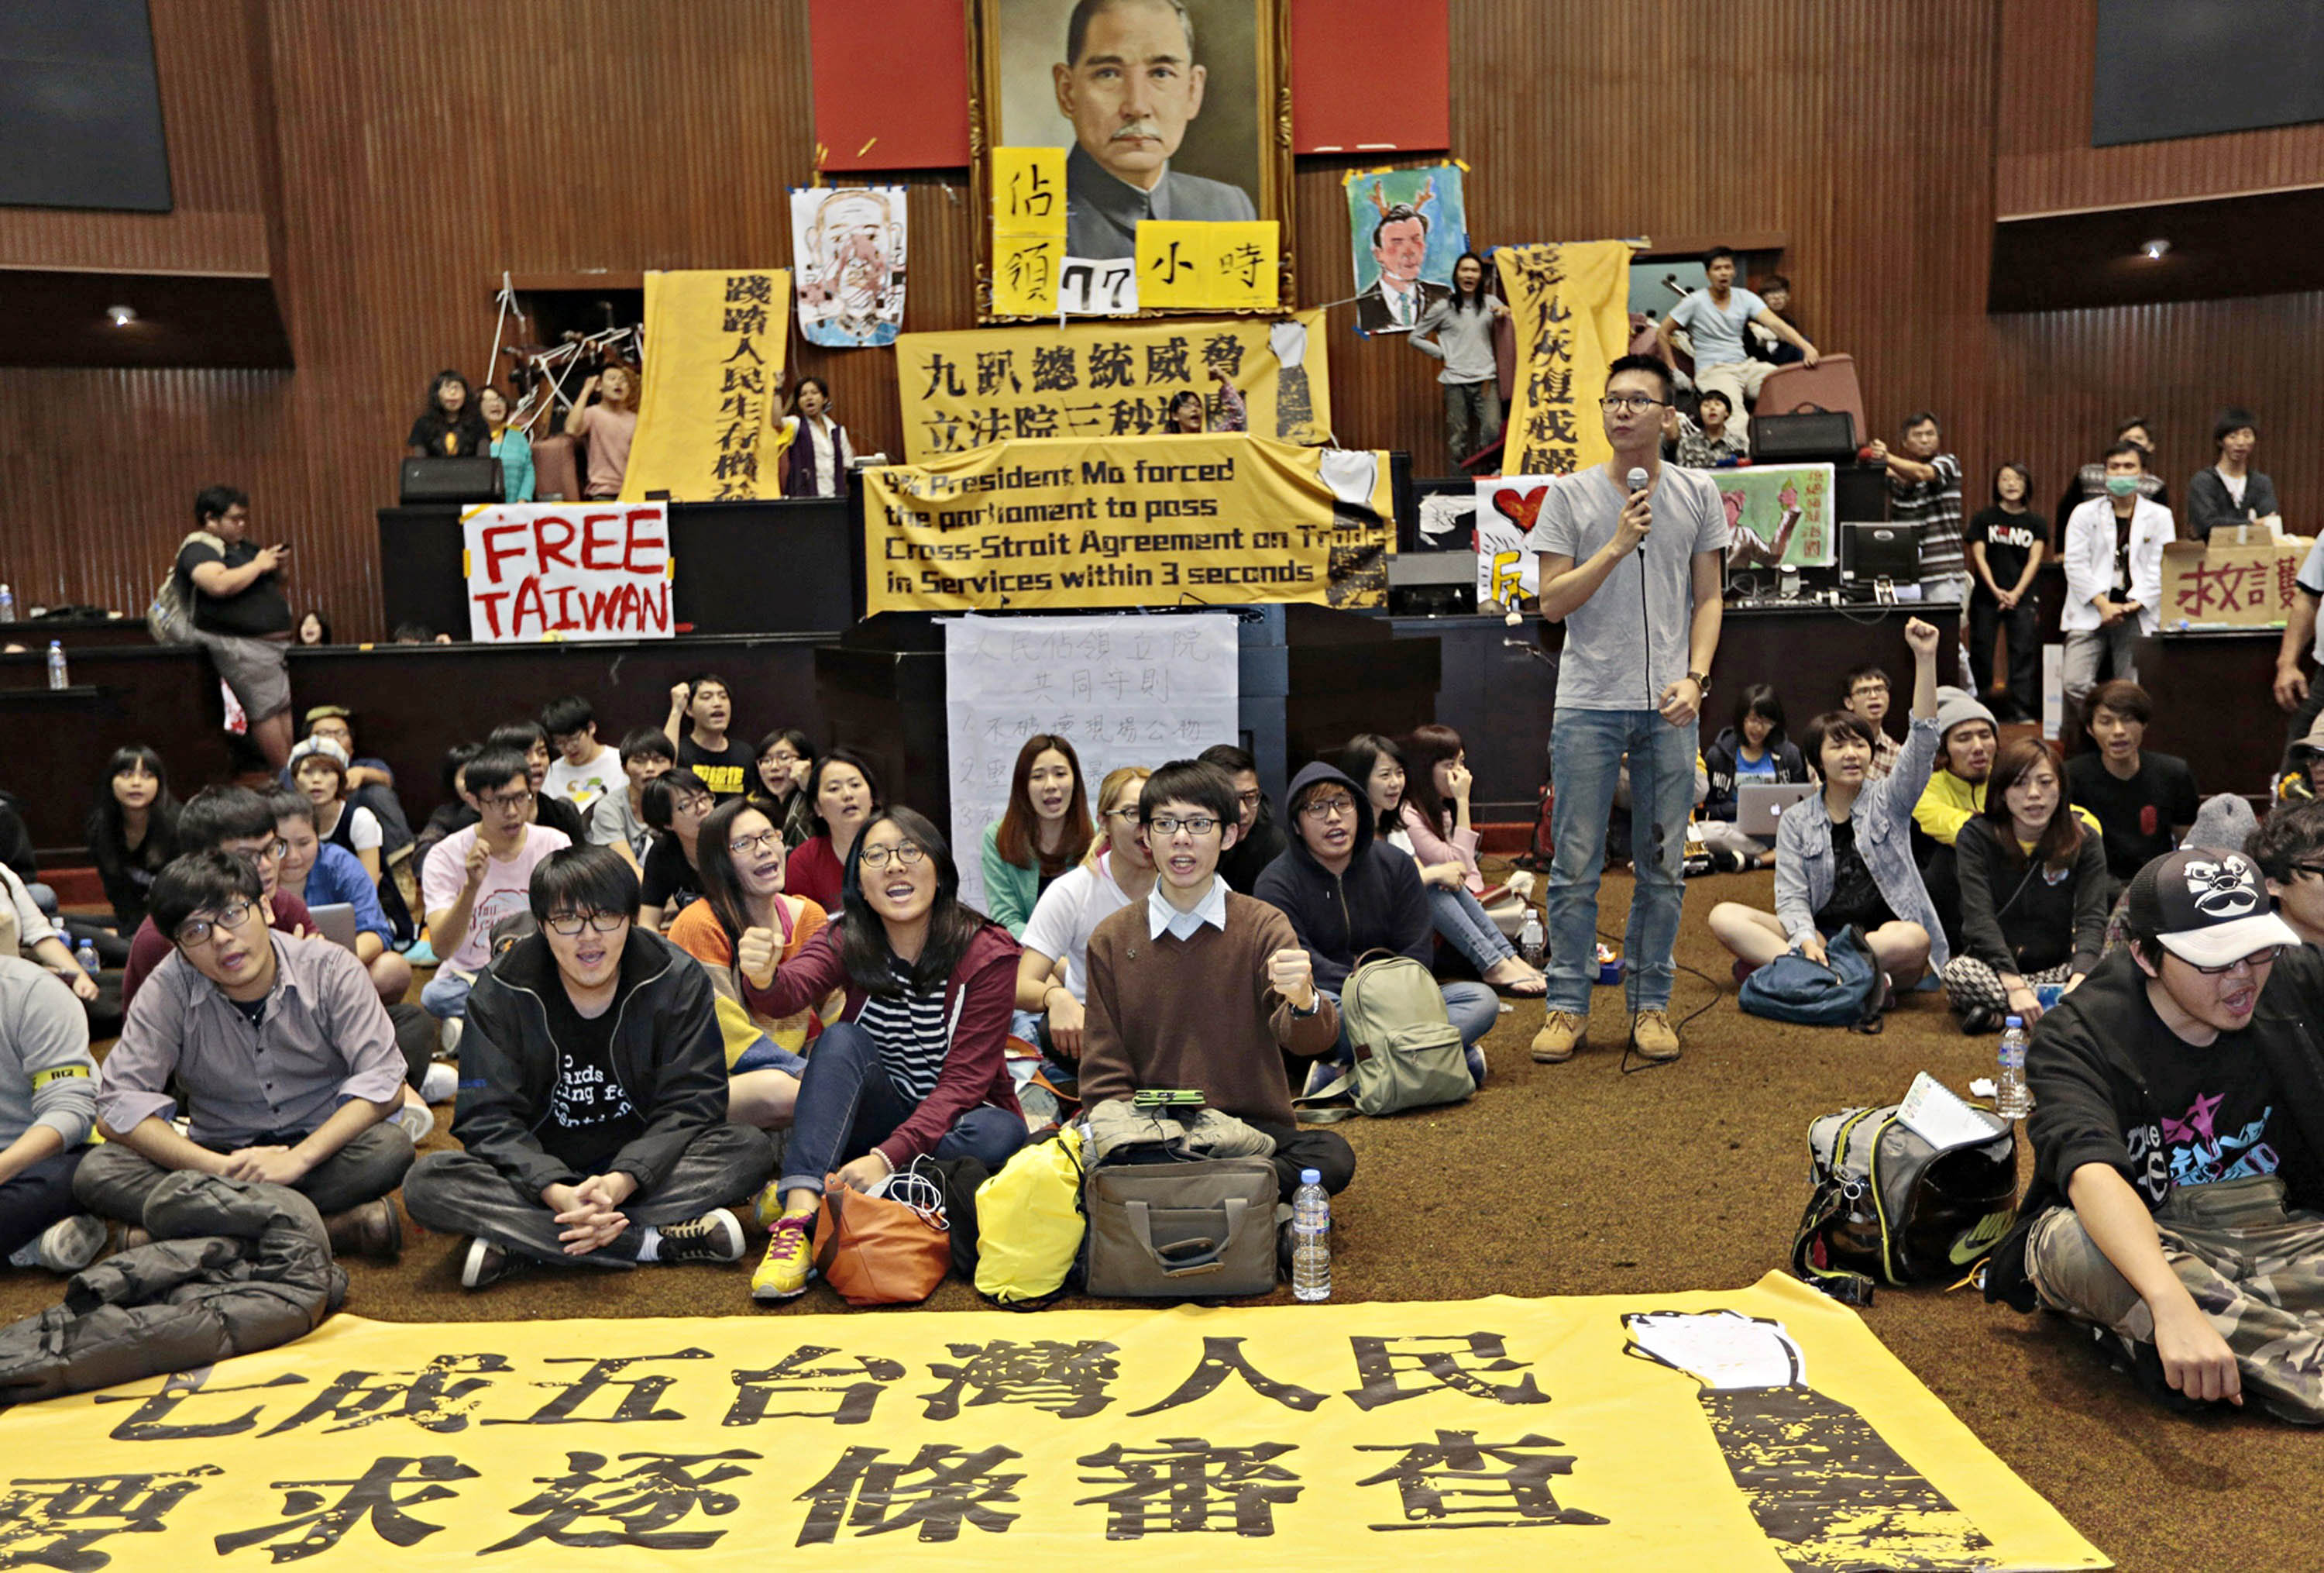 Occupy Taipei                        Students camped out in Taiwan's legislature in March to express their opposition to a new trade agreement with China